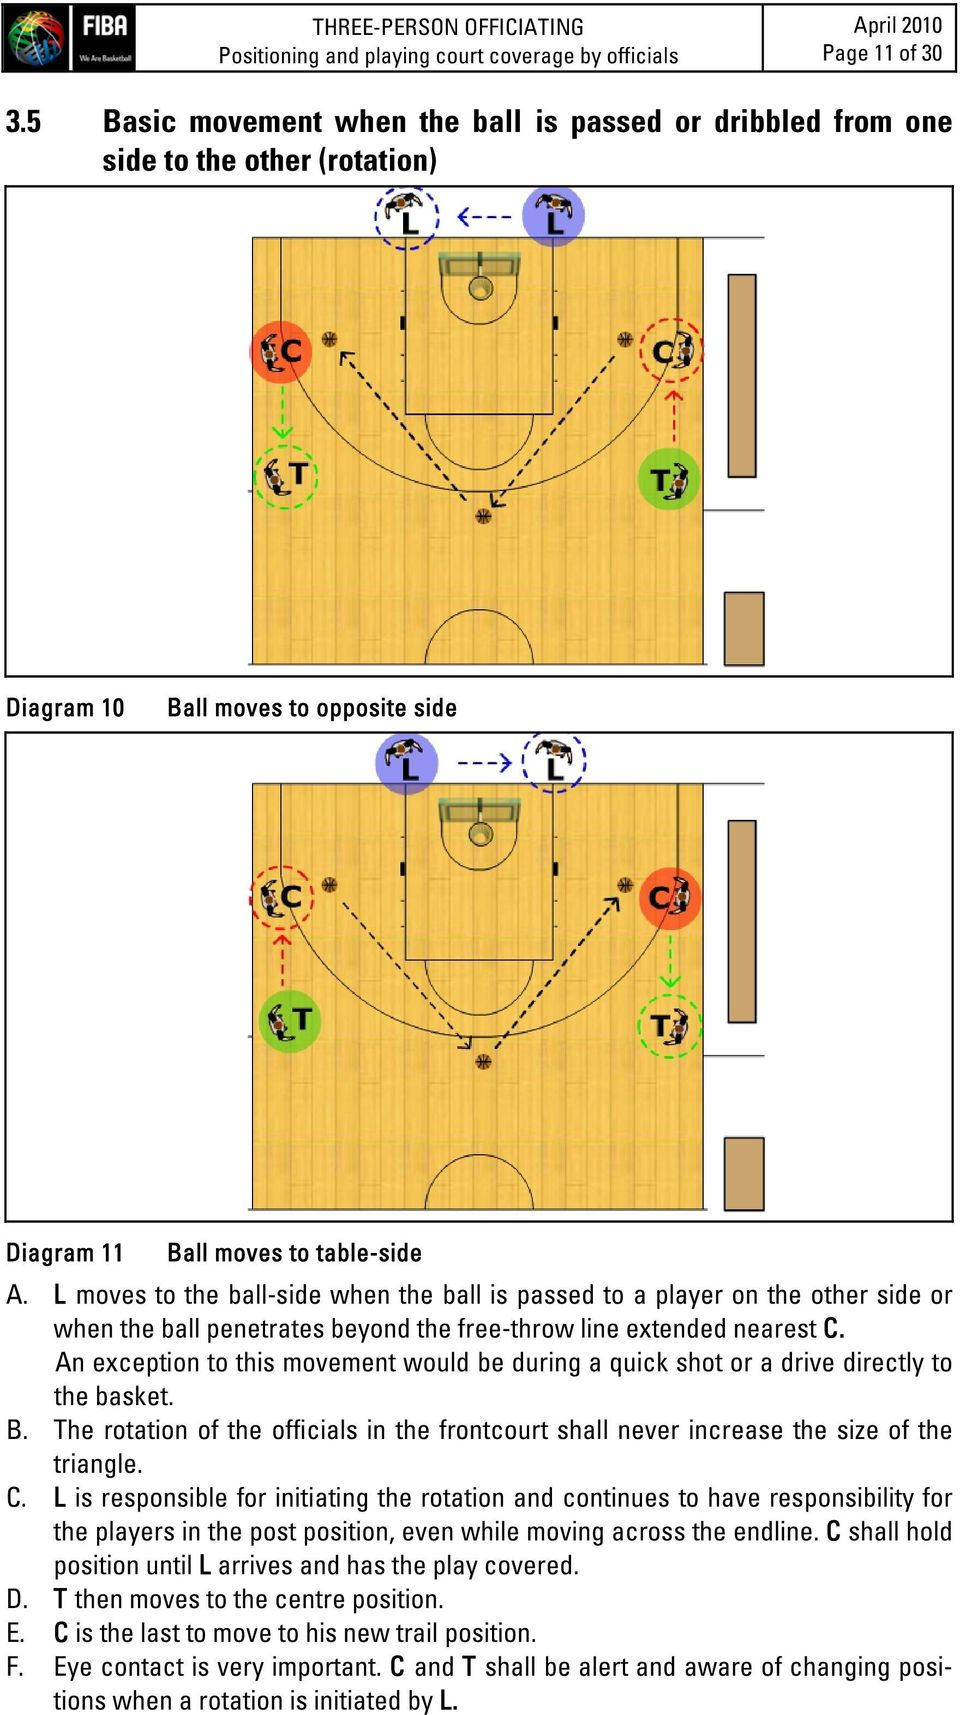 L moves to the ball-side when the ball is passed to a player on the other side or when the ball penetrates beyond the free-throw line extended nearest C.